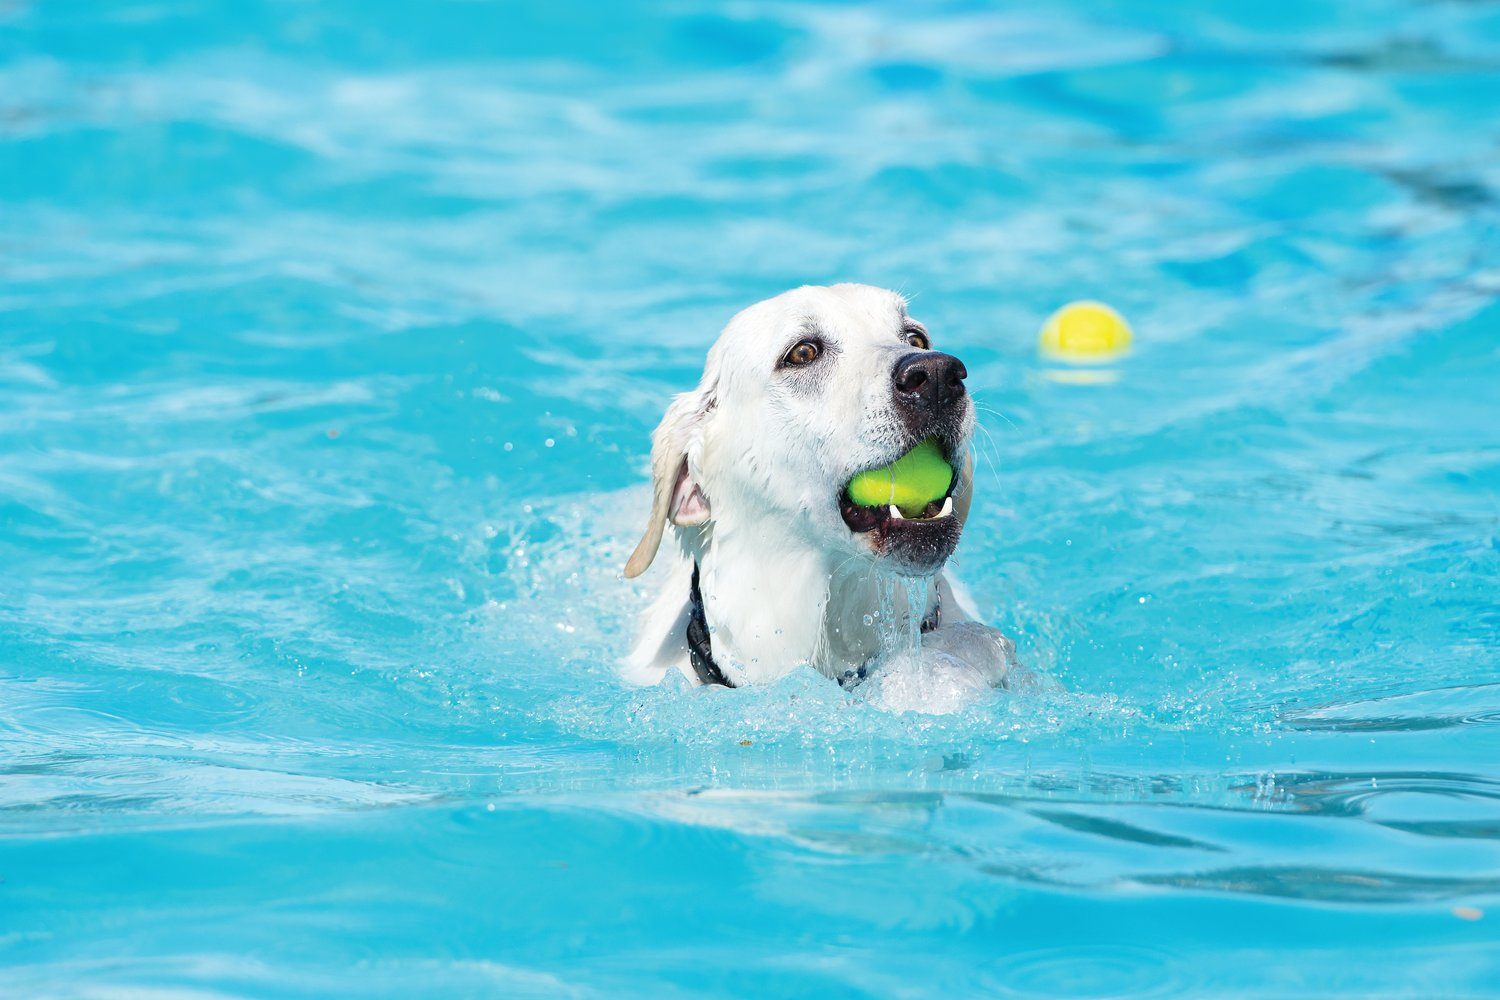 """Kolt"", a 9 year-old Labrador Retriever, brings a tennis ball back to his owner, during Thornton's 12th Annual Paws For A Dip at Thornton City Pool Aug. 17."